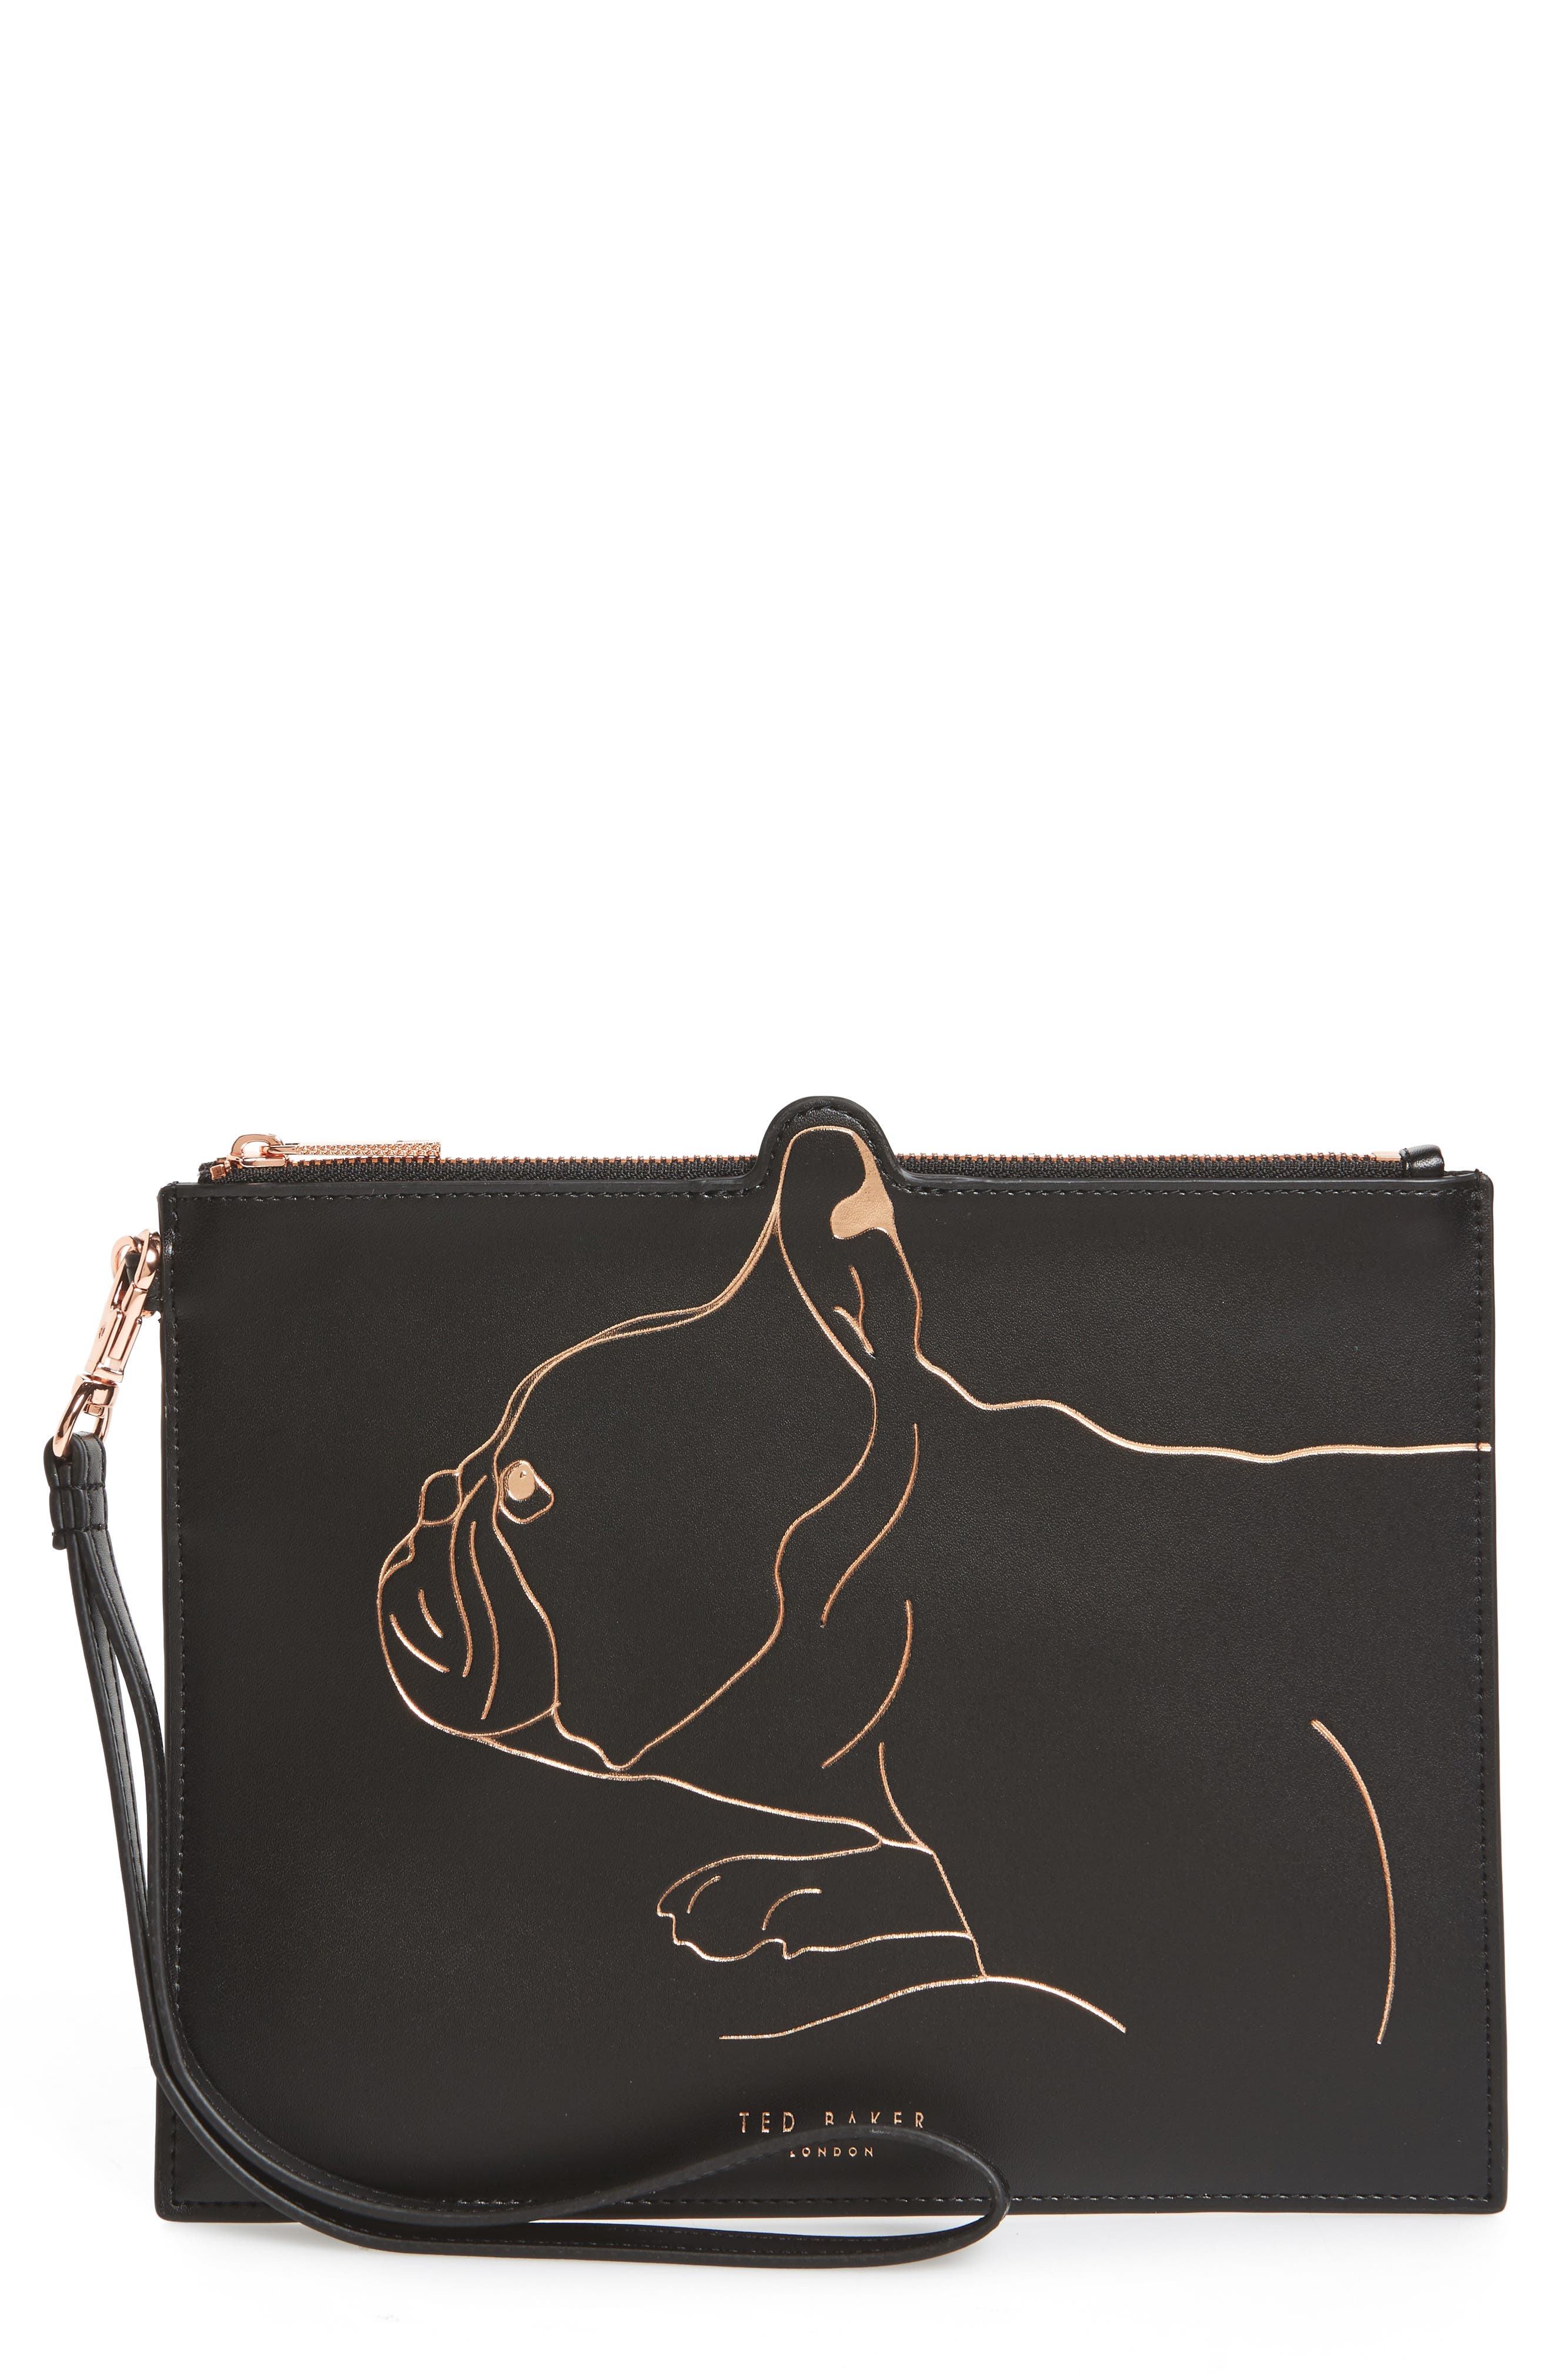 Alternate Image 1 Selected - Ted Baker London Barker Leather Pouch